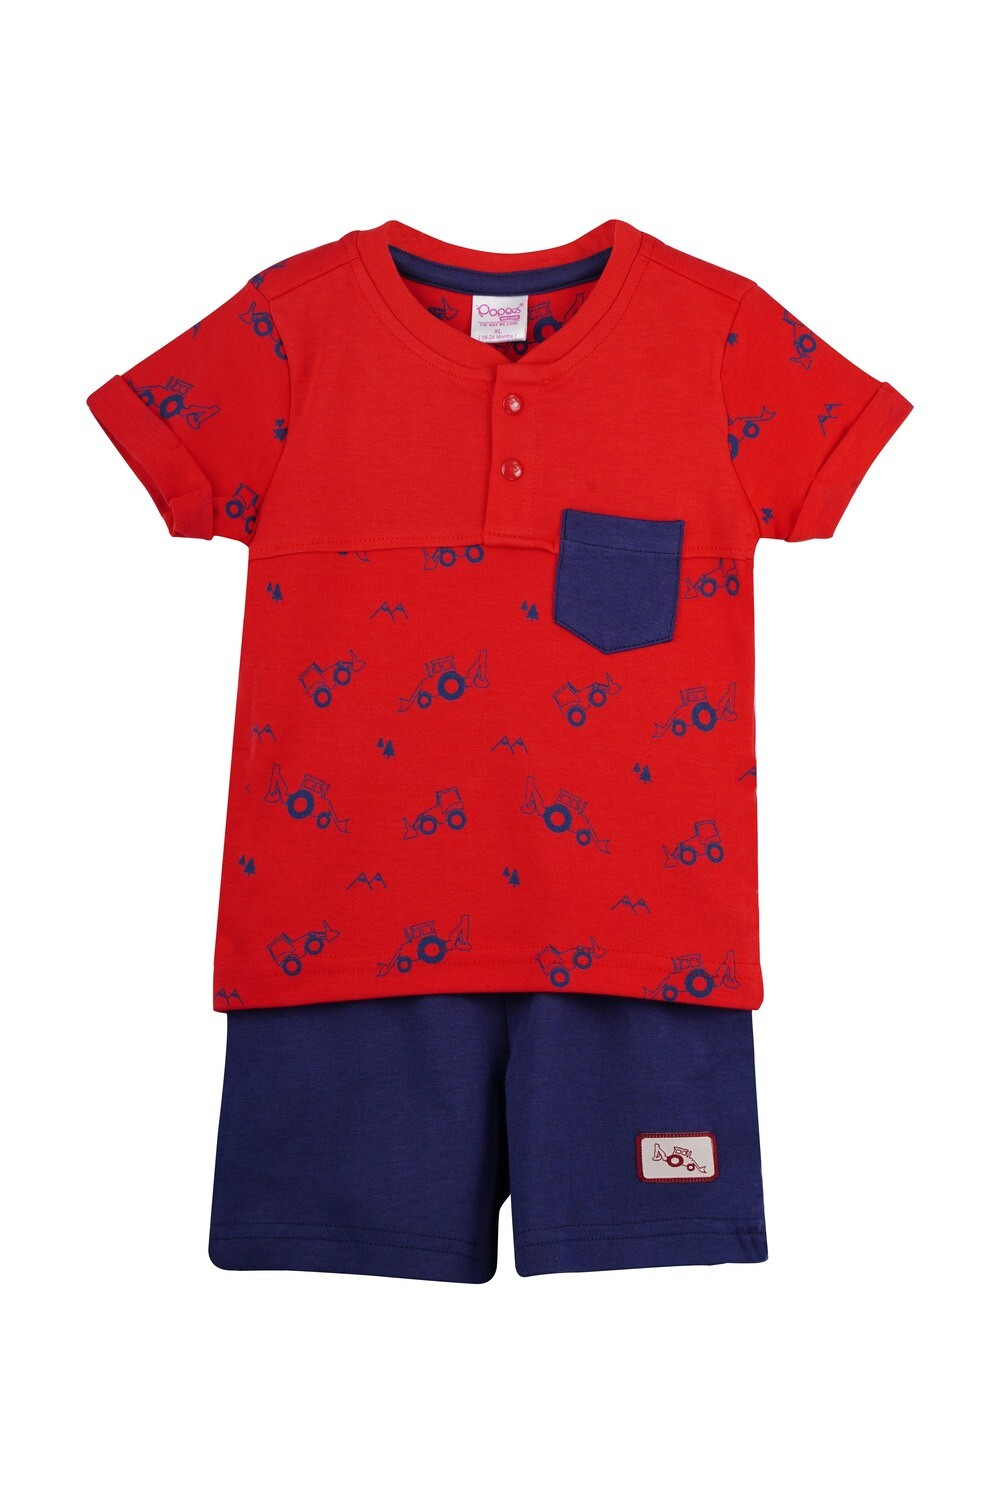 TARKOV True Red Top and Shorts Half sleeve for Baby Boys